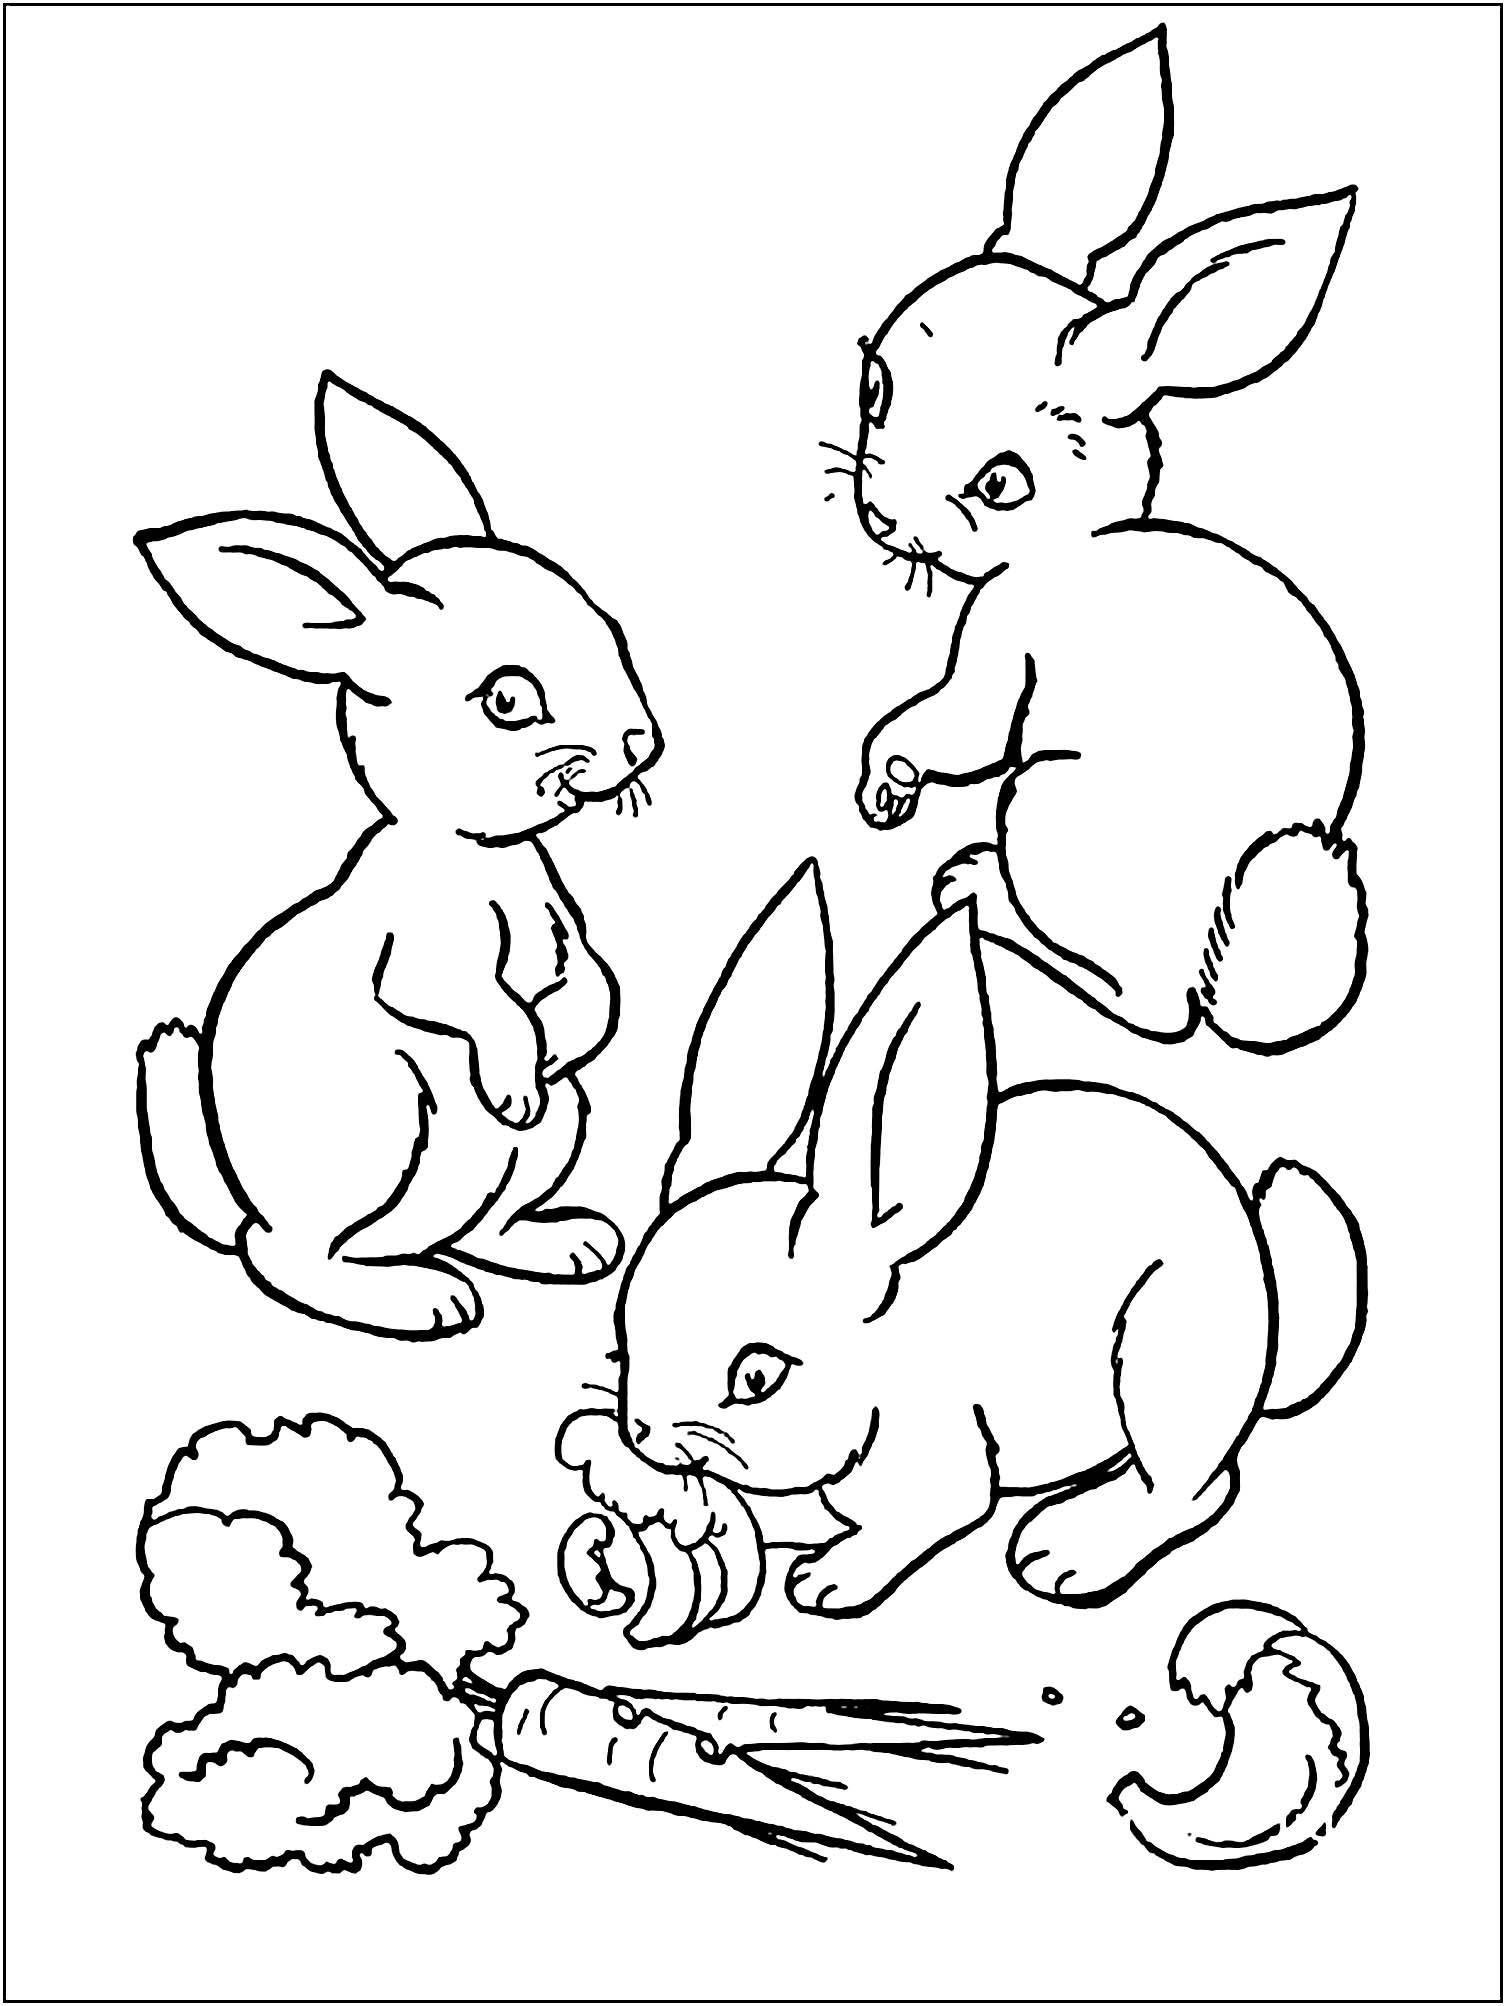 bunny color sheet bunny coloring pages free download on clipartmag color sheet bunny